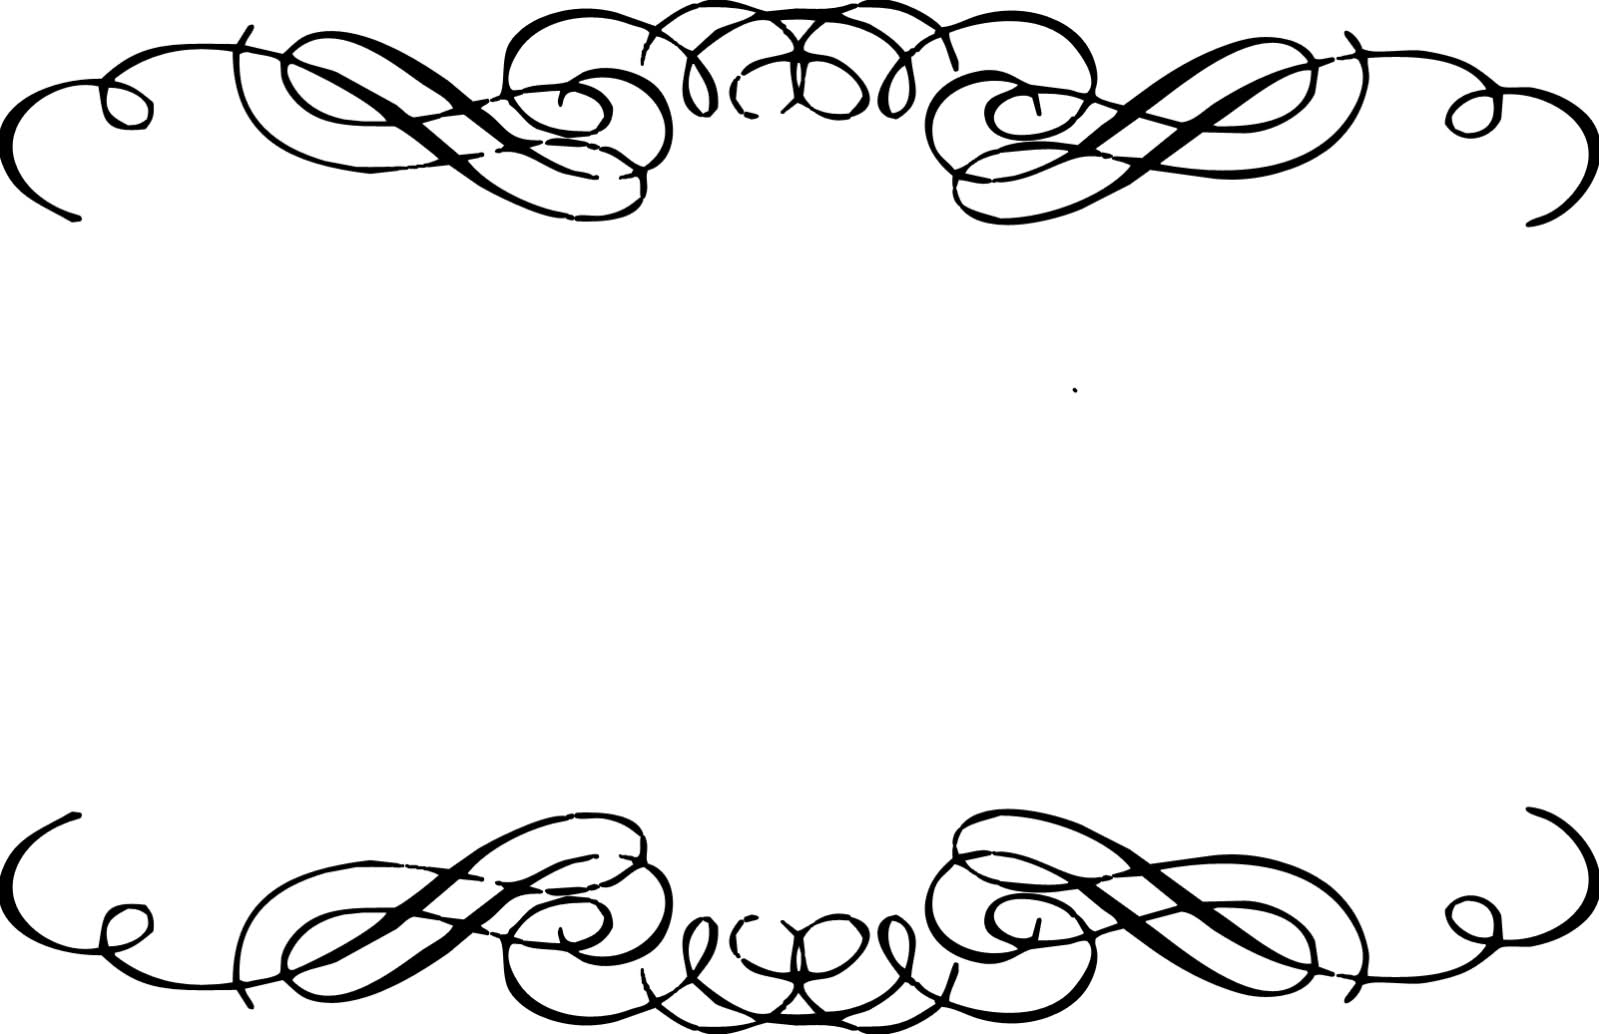 hight resolution of free clip art borders scroll clipart free clipart and others art 2 3